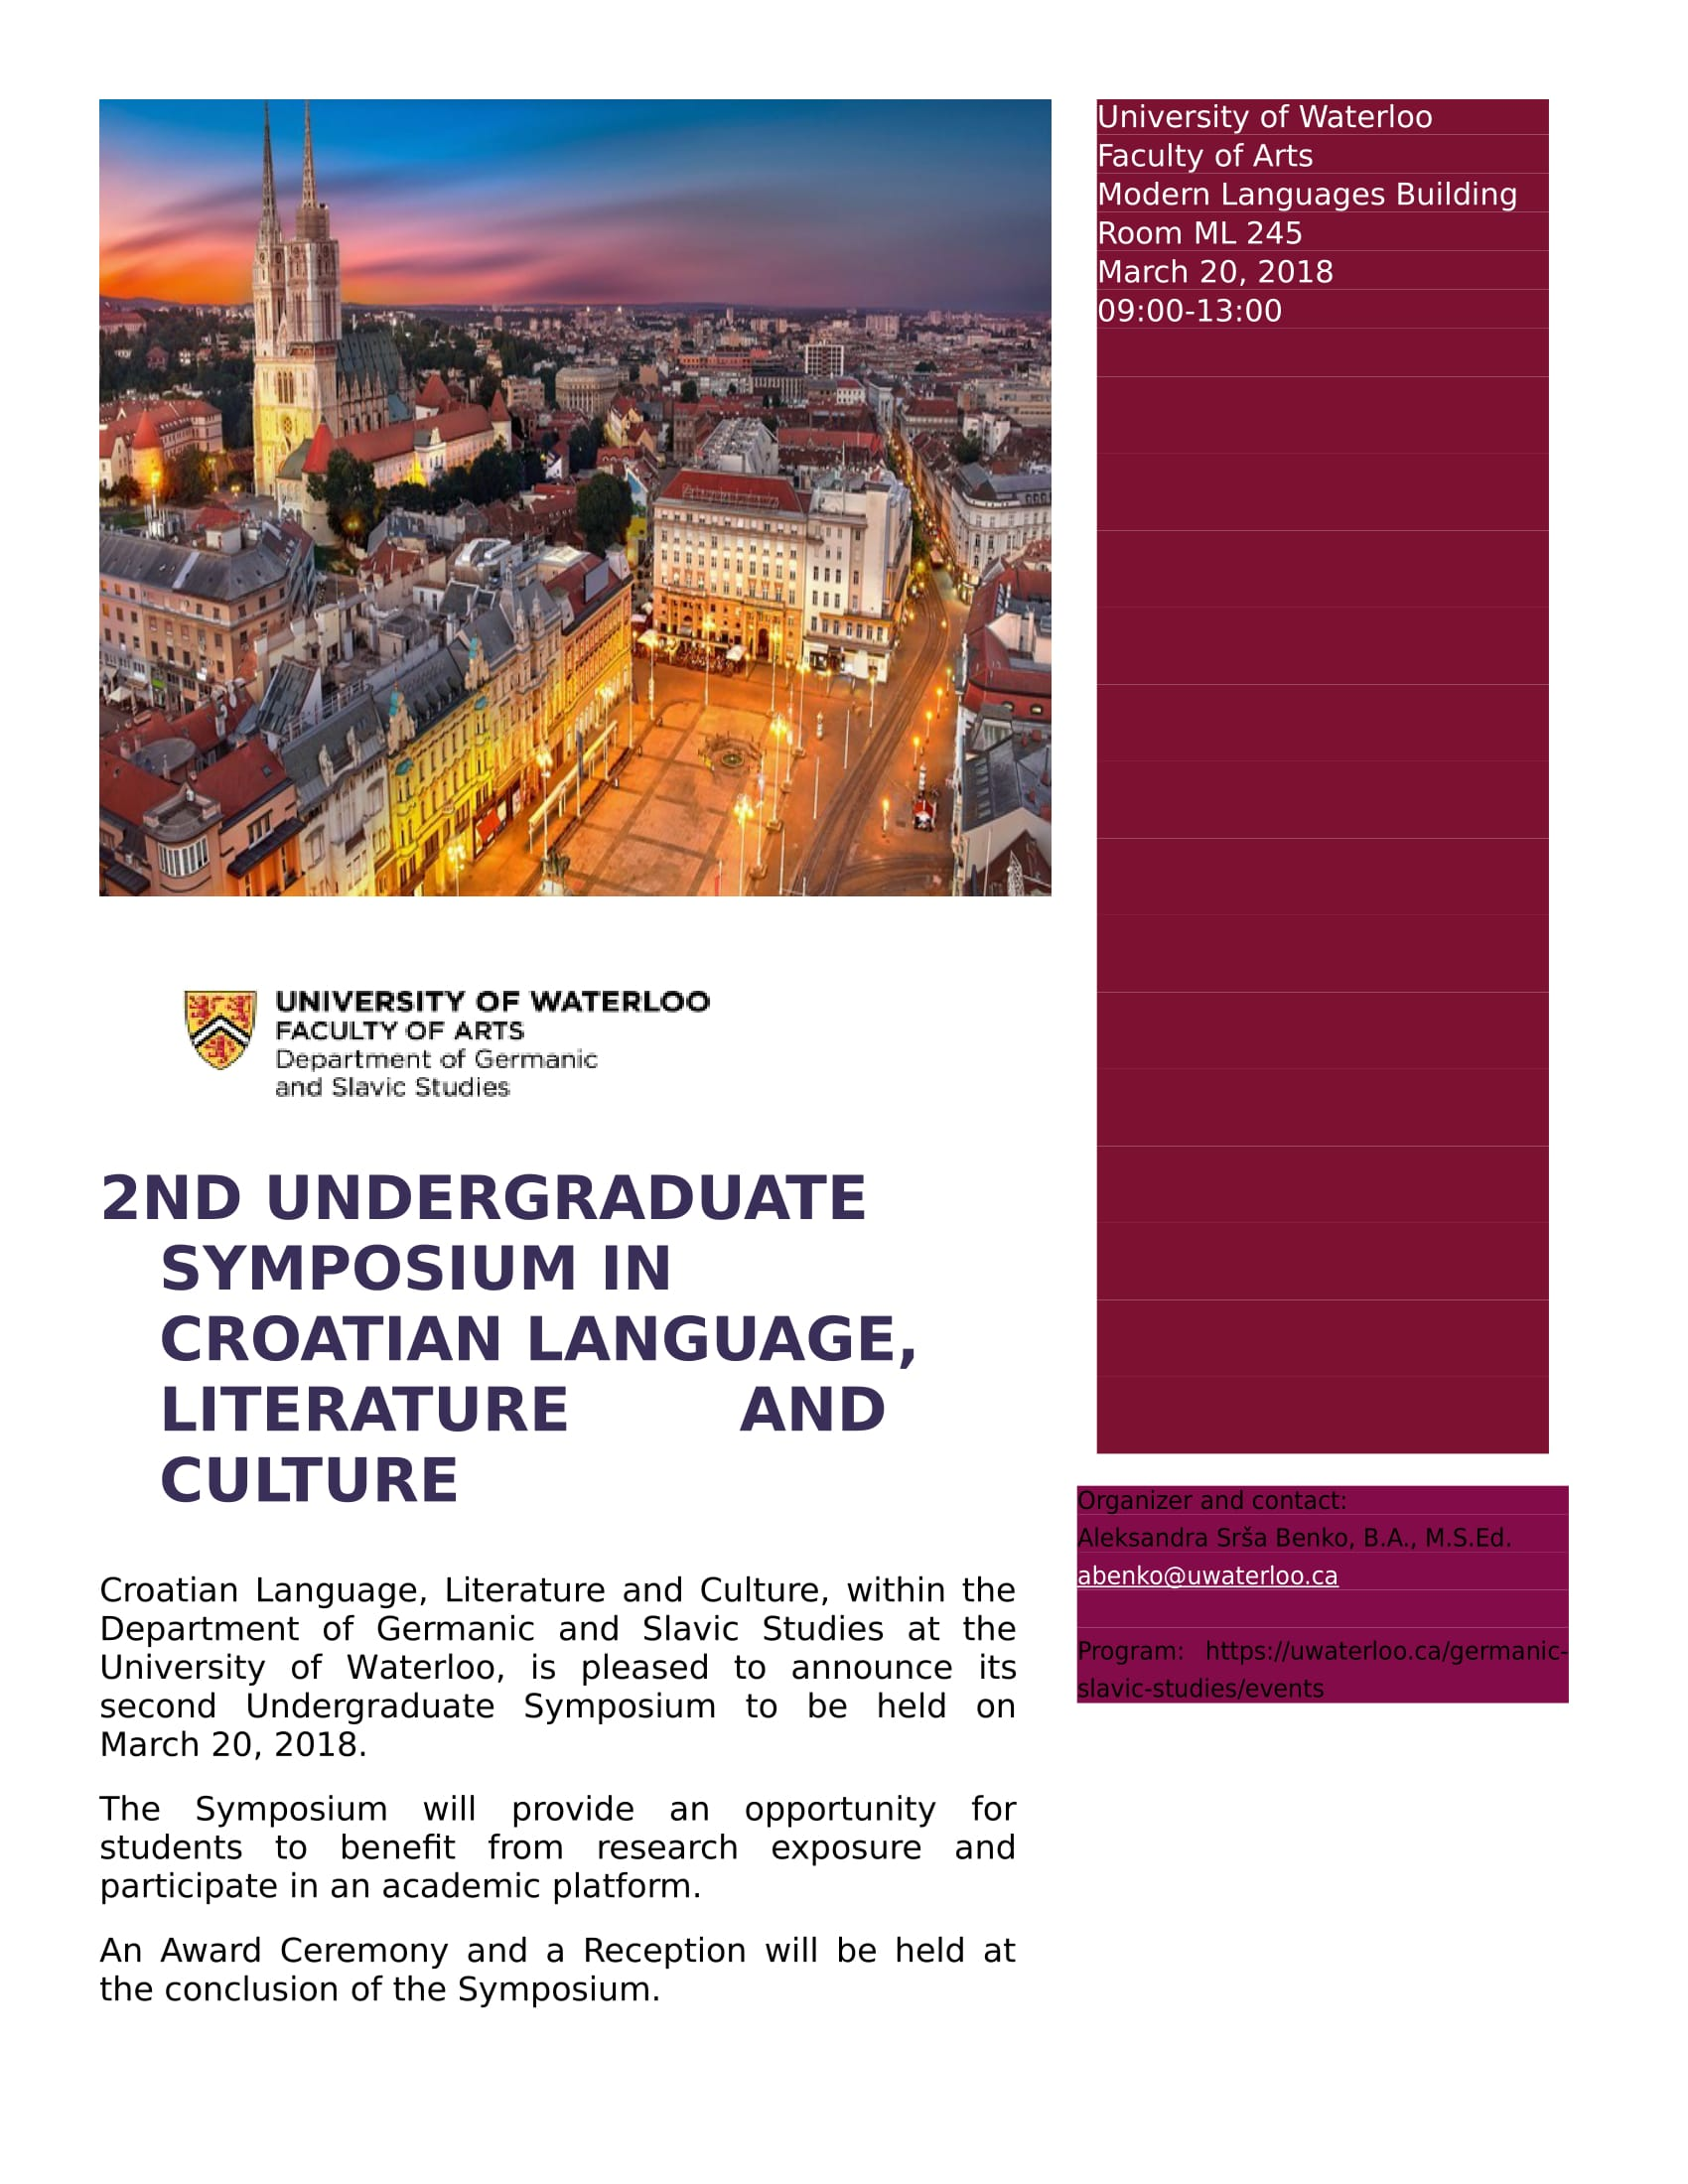 Poster for Croatian Symposium